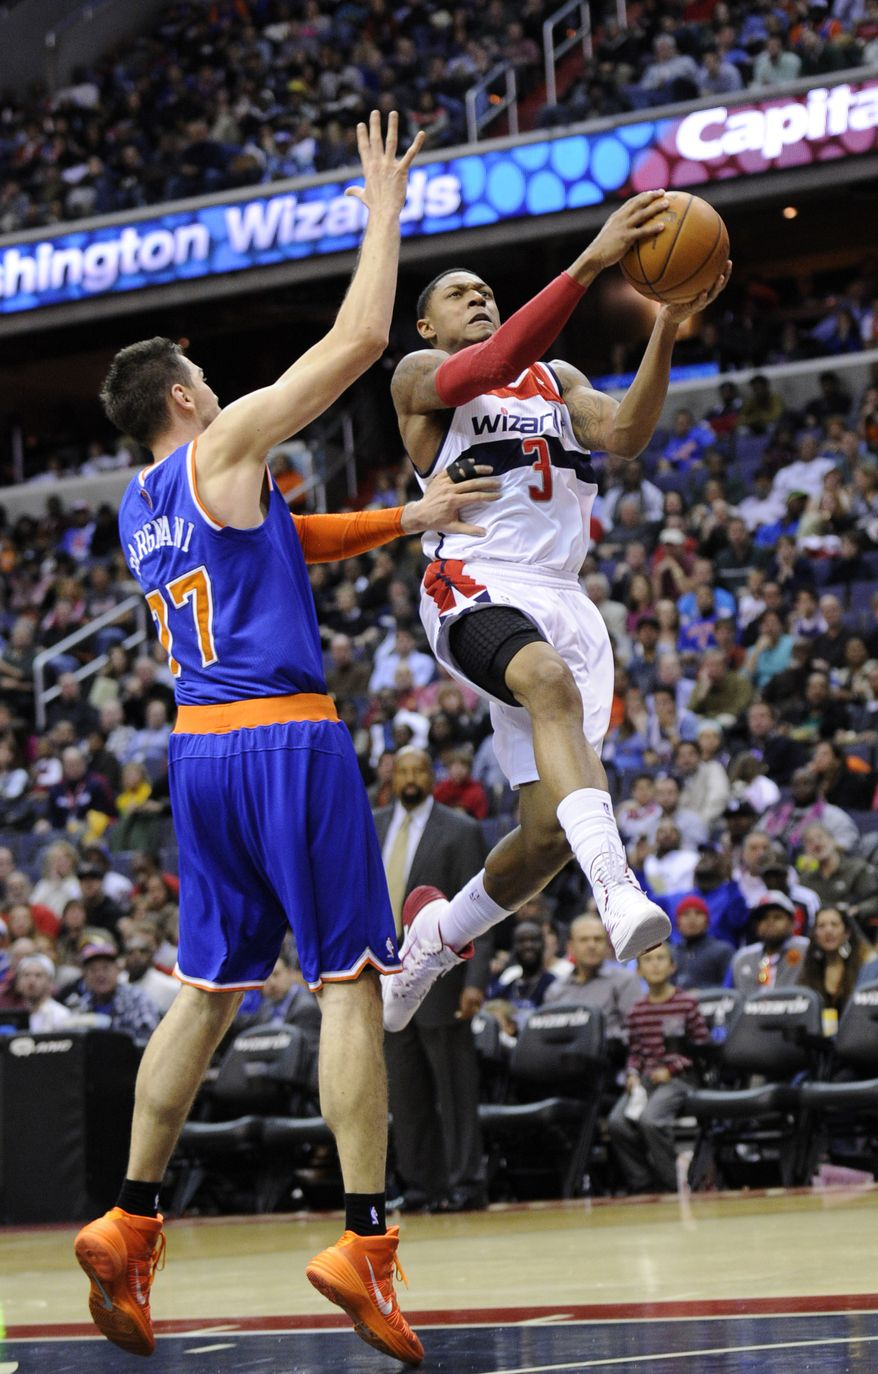 Washington Wizards guard Bradley Beal (3) goes to the basket against New York Knicks forward Andrea Bargnani (77), of Italy, during the second half of an NBA basketball game, Saturday, Nov. 23, 2013, in Washington. Bargnani was called for a foul on the play. The Wizards won 98-89. (AP Photo/Nick Wass)